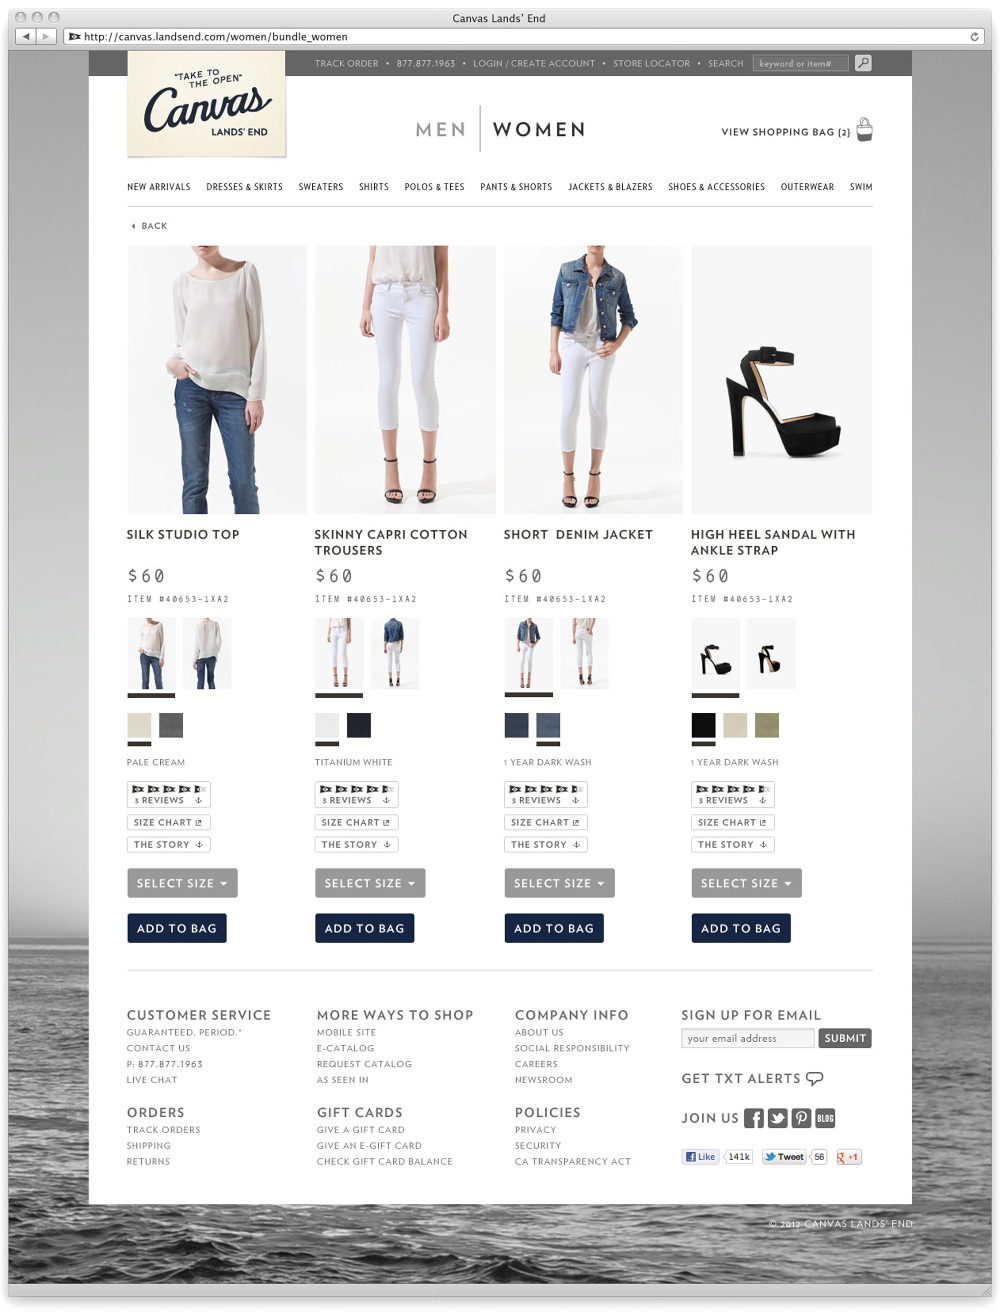 Canvas Lands' End Redesign - george agpoon / digital creative director